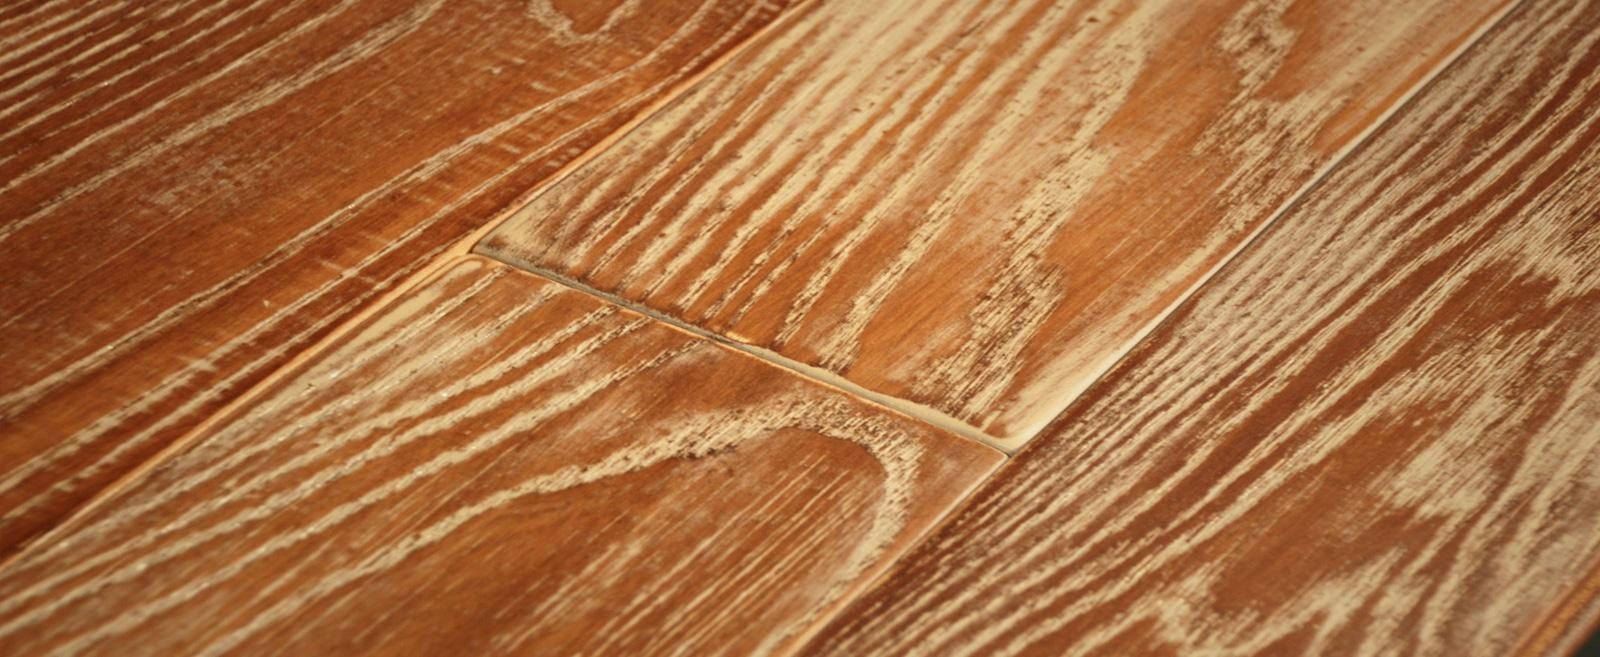 Brad Rehmeyer of Rehmeyer Floors designed this worn painted hardwood flooring